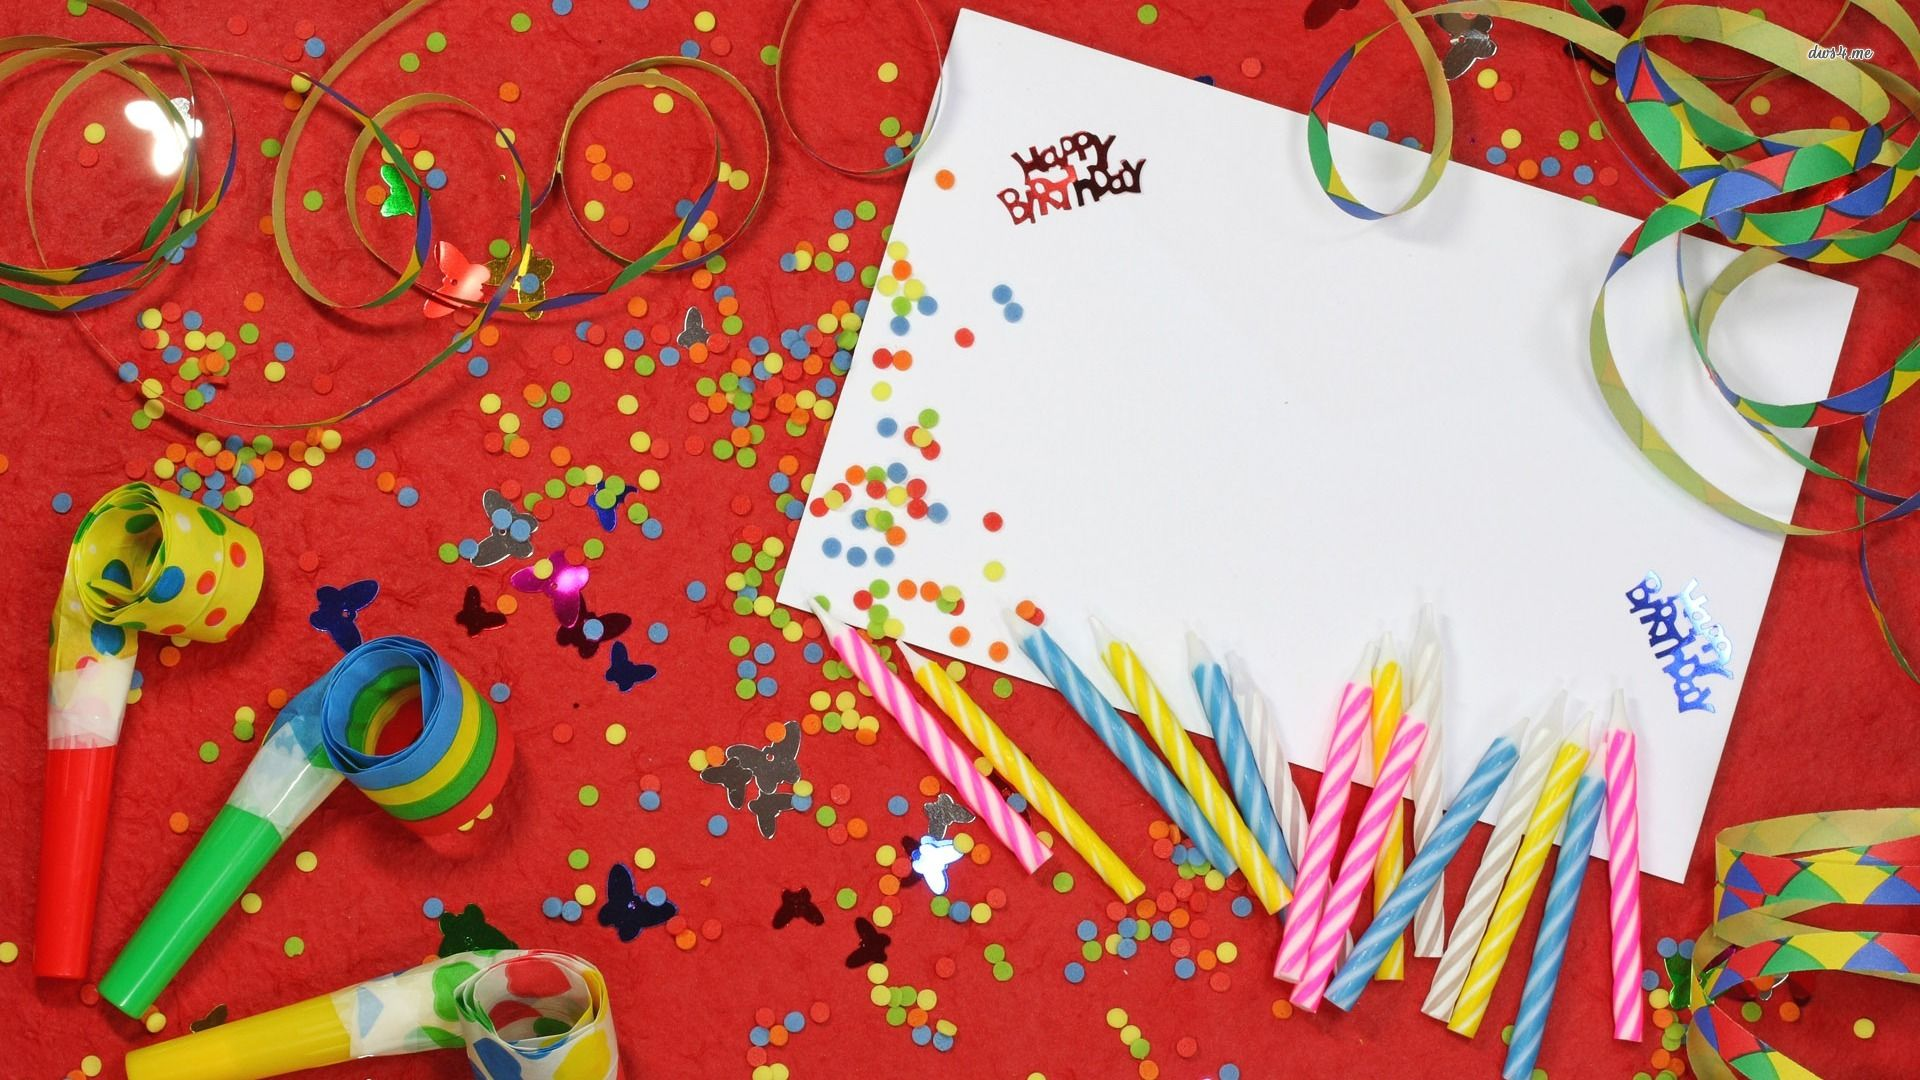 Hd wallpaper birthday - Happy Birthday Wallpaper For Pc Full Hd Pictures 1920 1080 Birth Day Pic Wallpapers